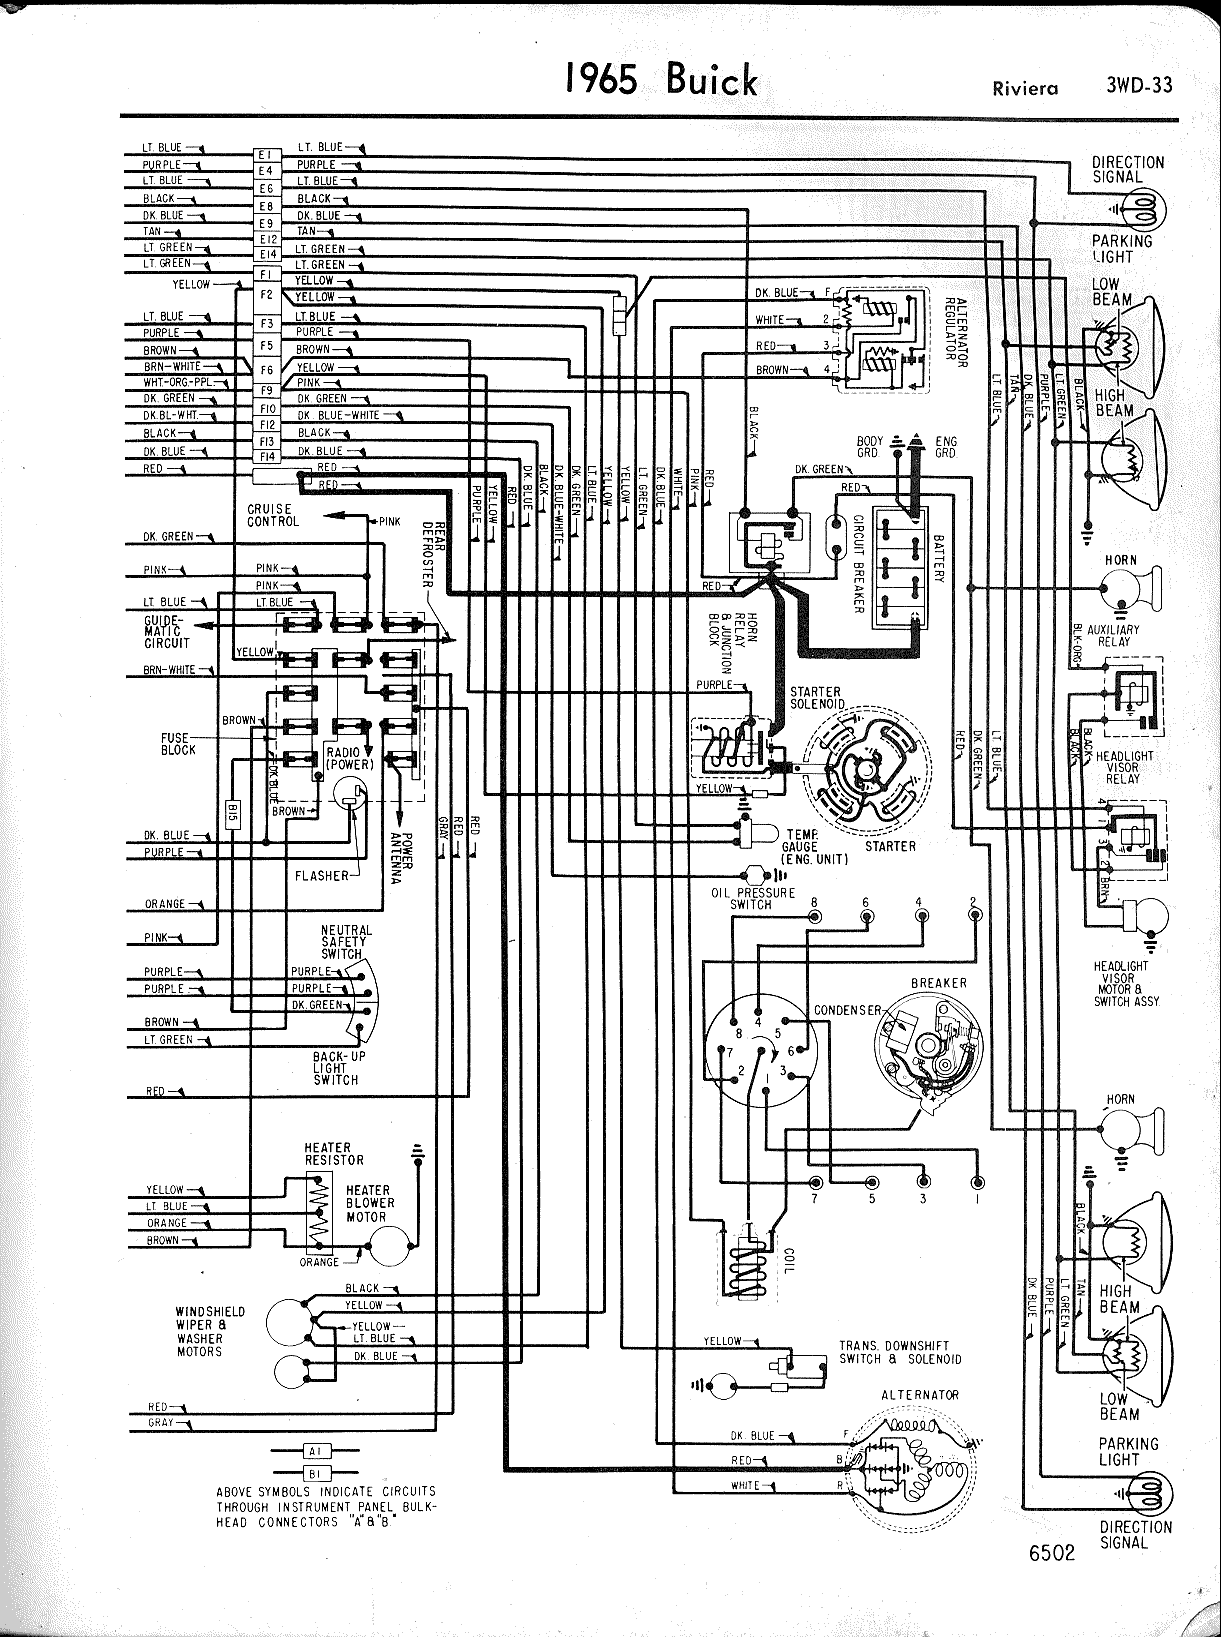 1967 Buick Skylark Fuse Box Diagram List Of Schematic Circuit 1994 Buick  LeSabre Fuse Box Diagram 1967 Buick Skylark Fuse Box Diagram